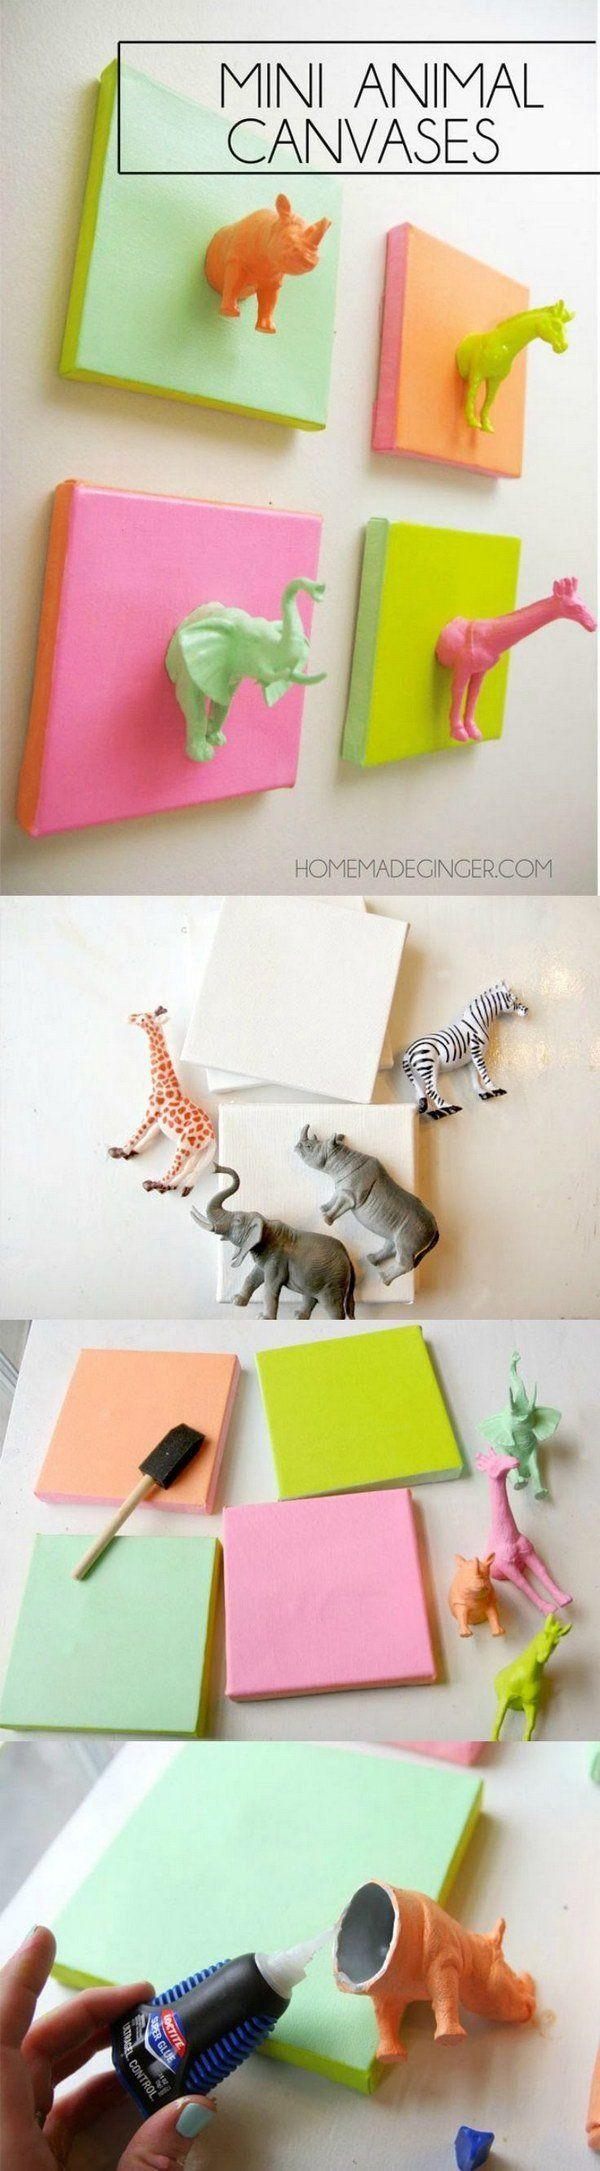 25+ Best Colorful Wall Art Ideas On Pinterest | Animal Art For for Vibrant Wall Art